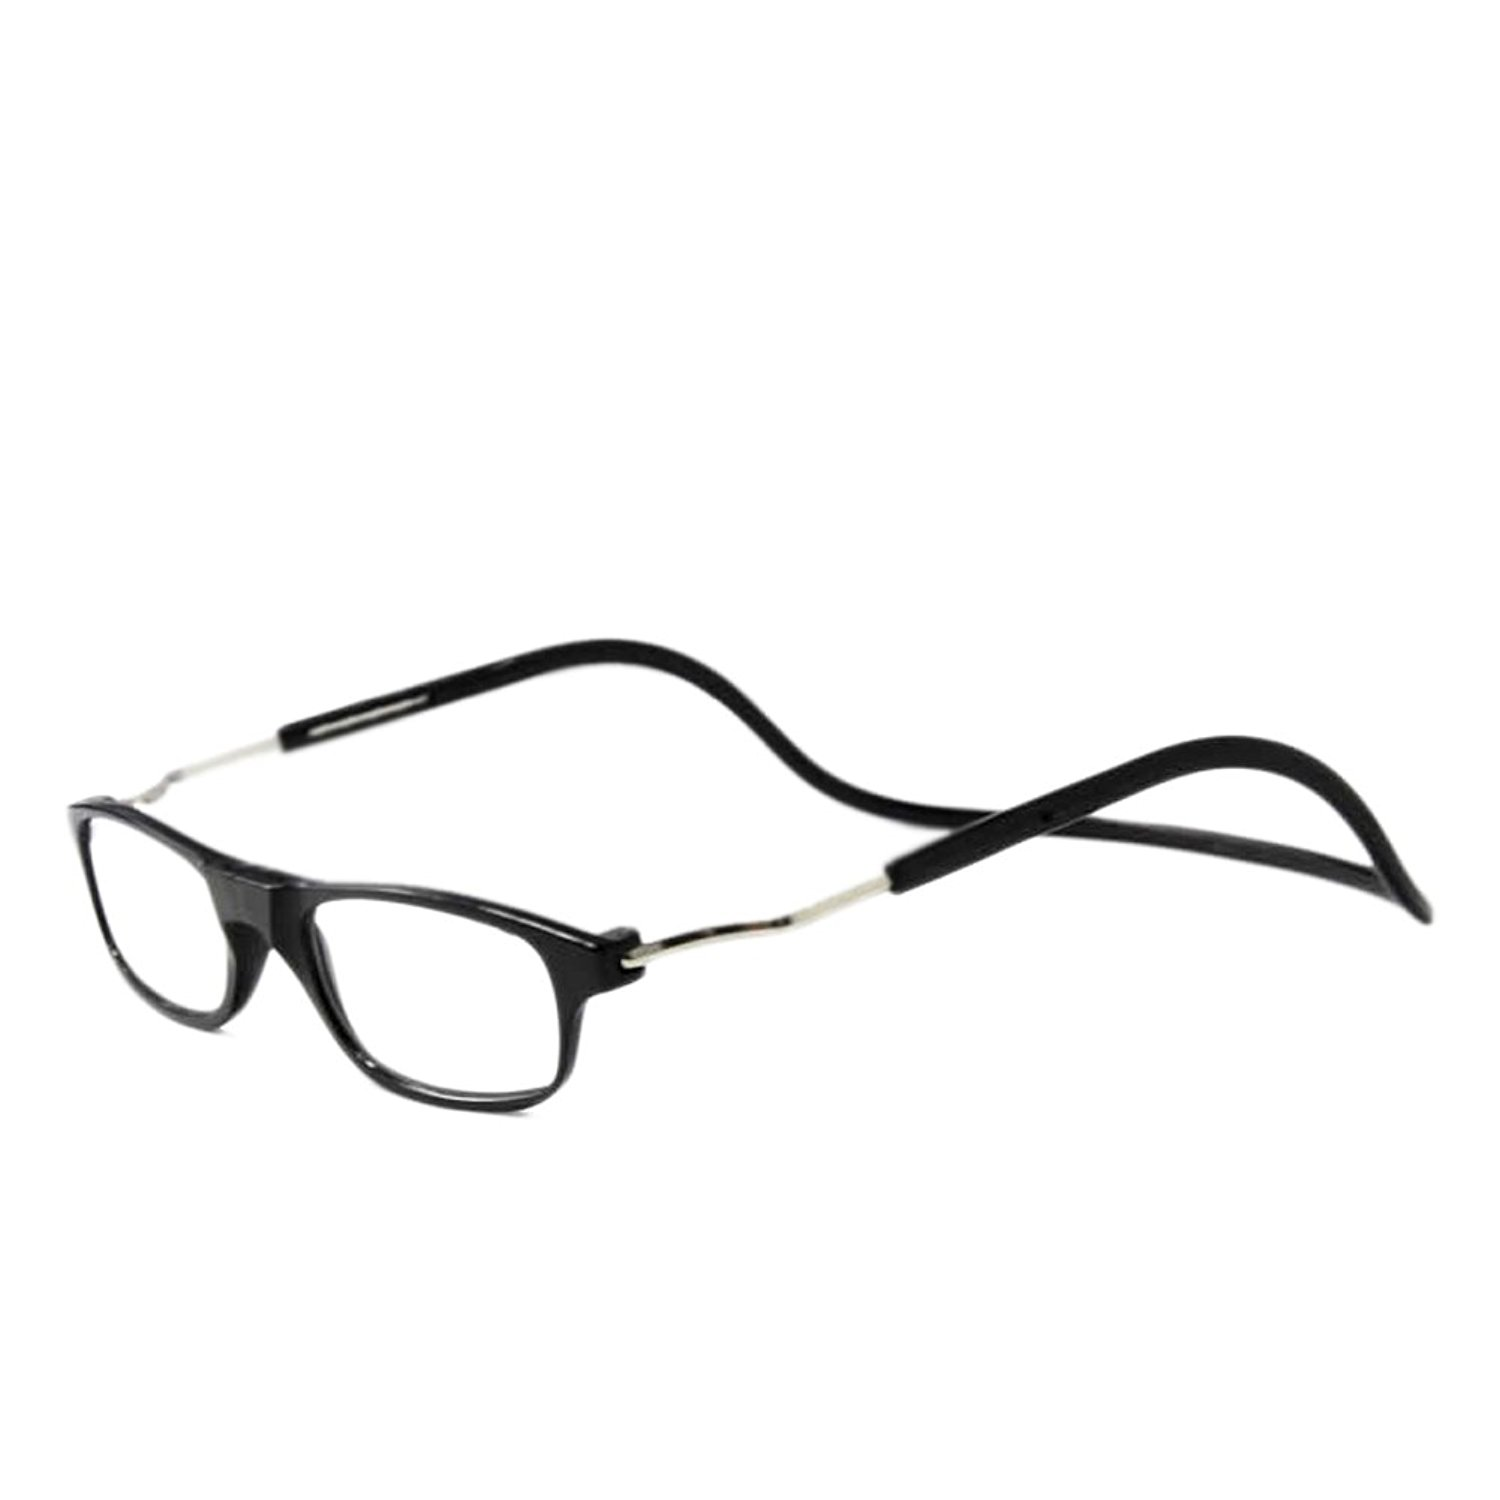 613d4e92f18 Get Quotations · Magnetic Reading Glasses